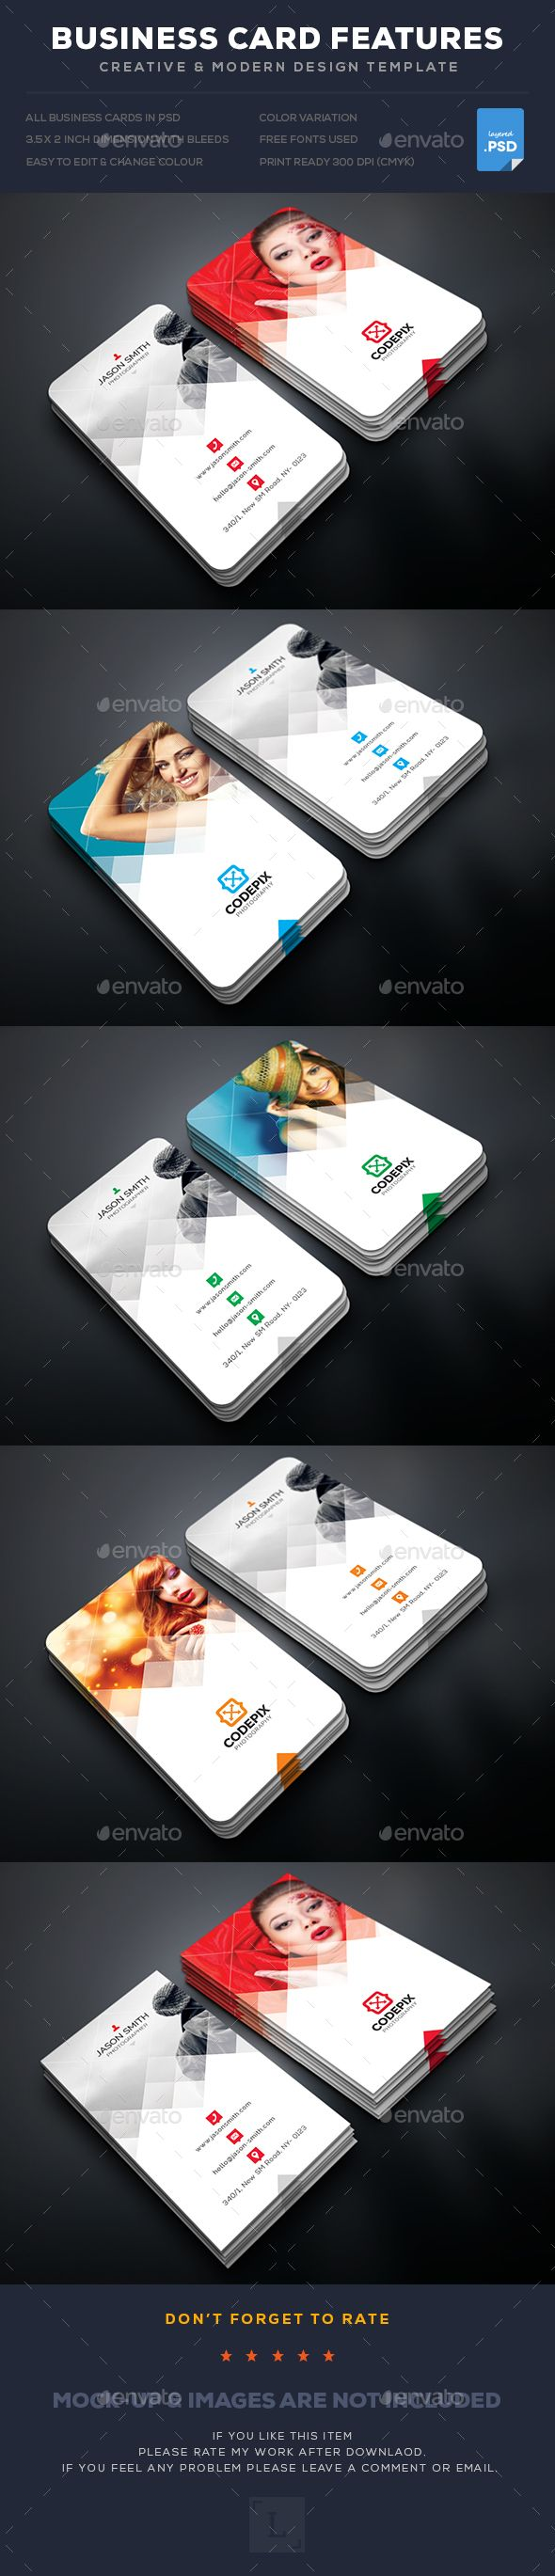 Photography Business Card Template PSD. Download here: https://graphicriver.net/item/photography-business-card/17625252?ref=ksioks